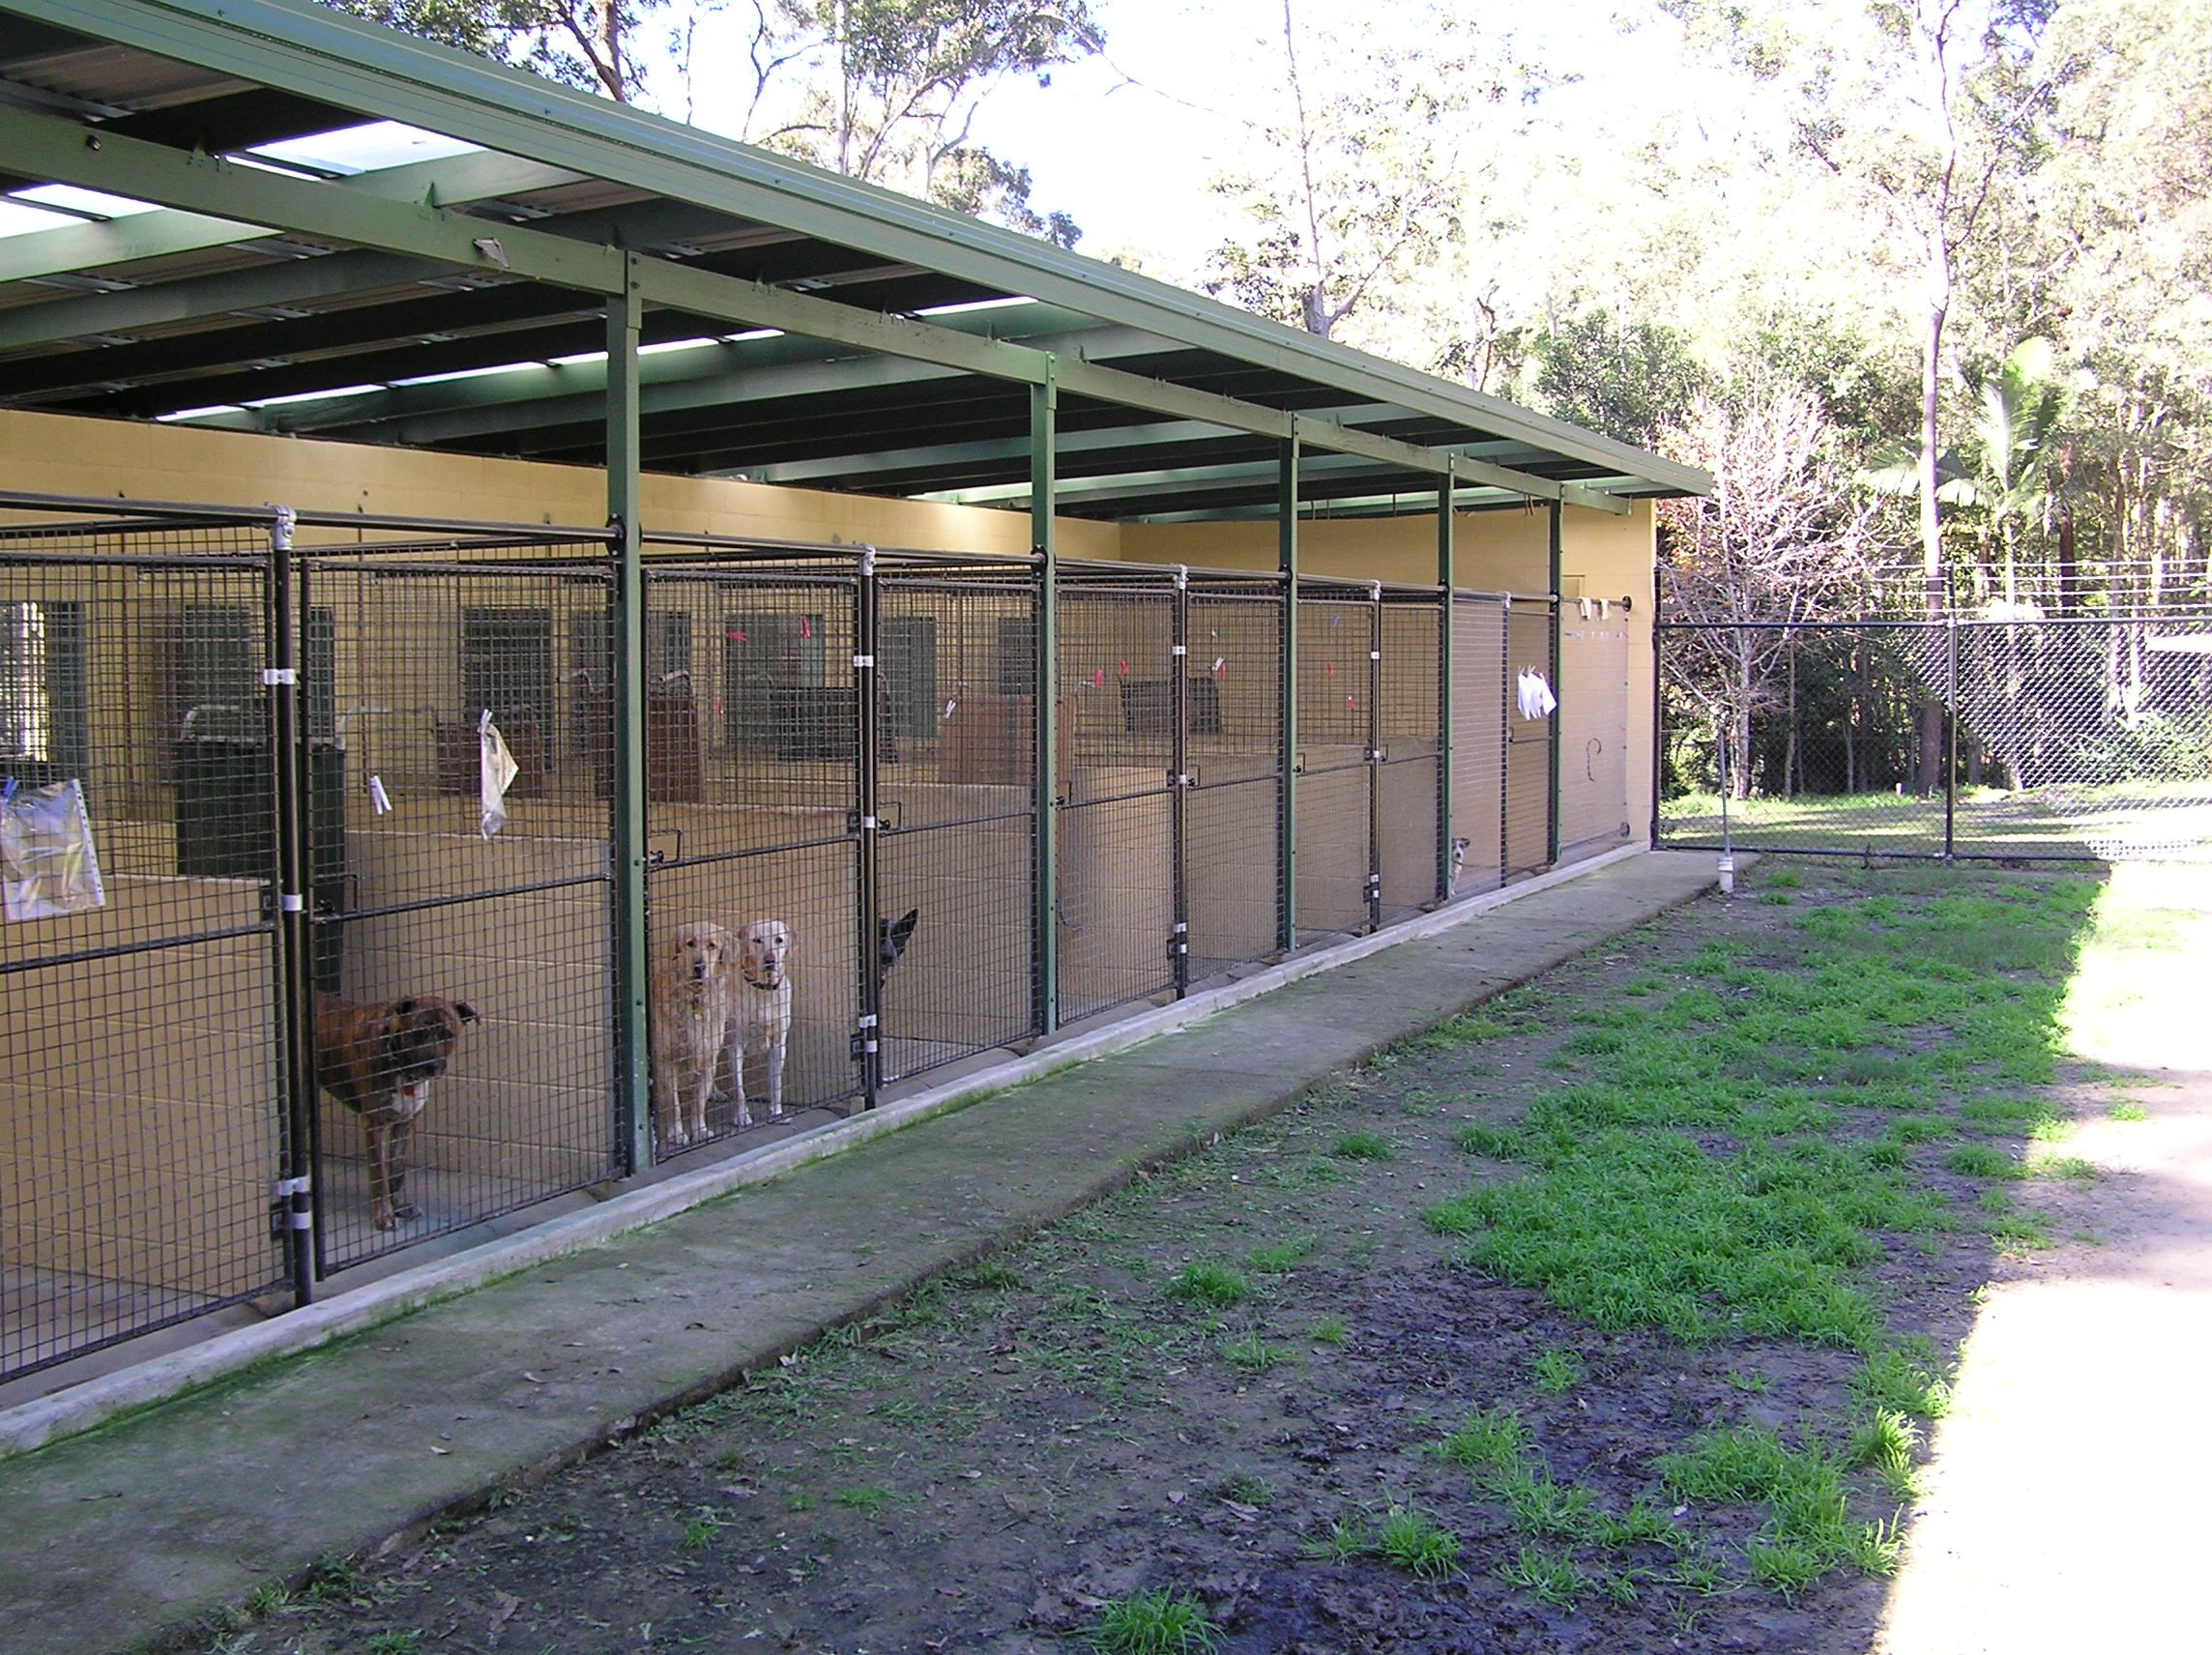 Best dog kennel designs stafford boarding kennel for Building dog kennels for breeding